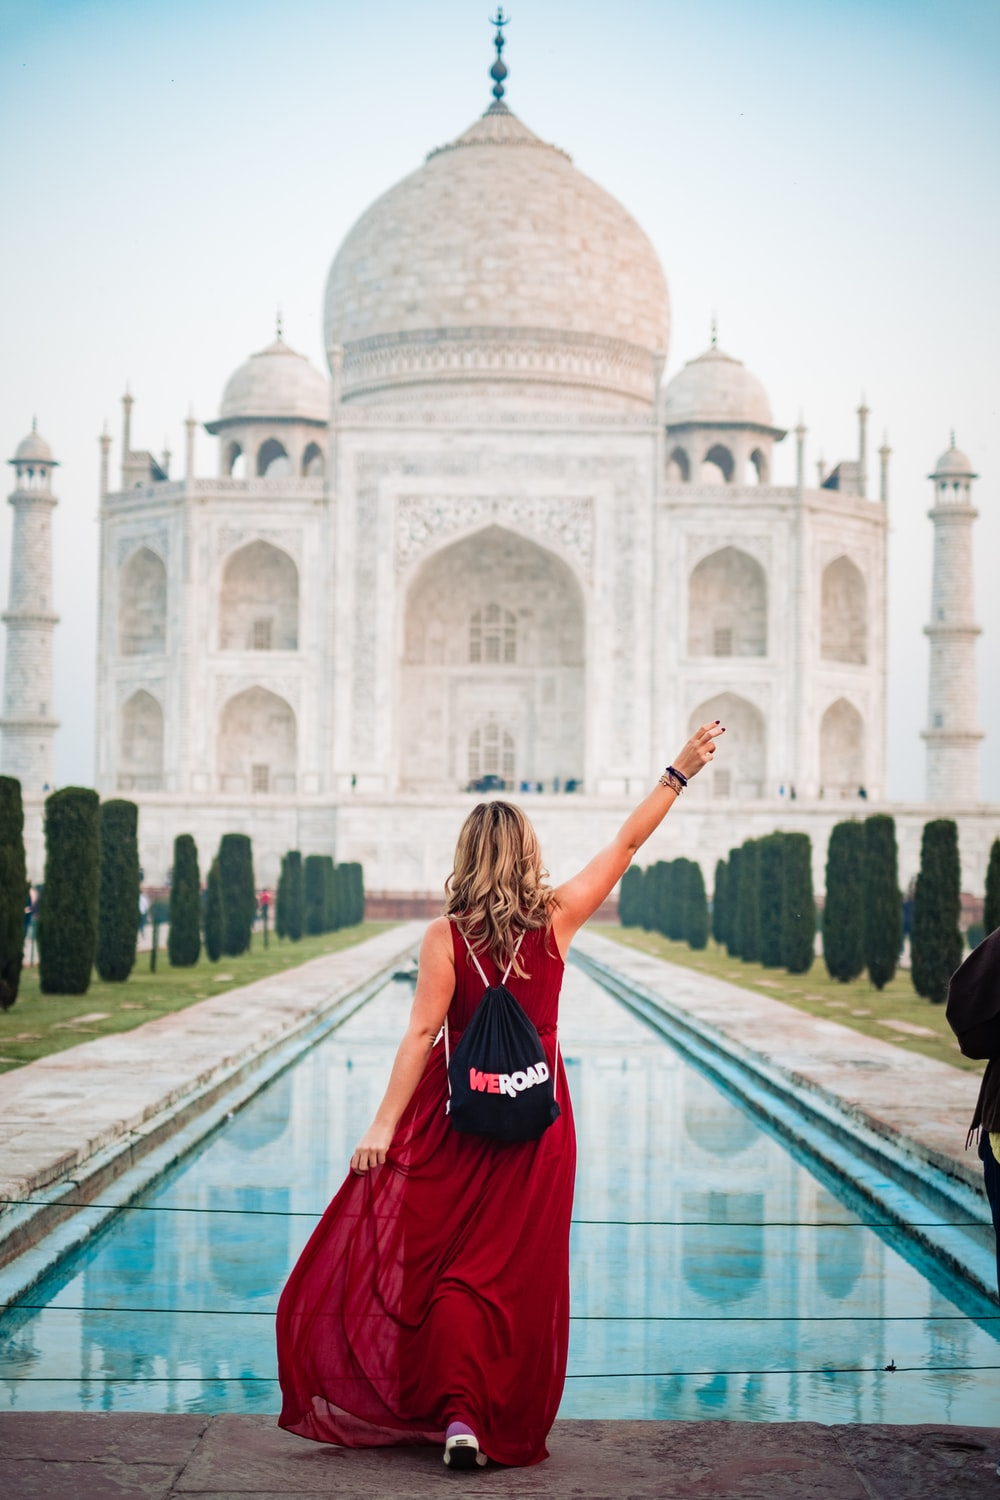 woman in red dress standing in front of Taj Mahal